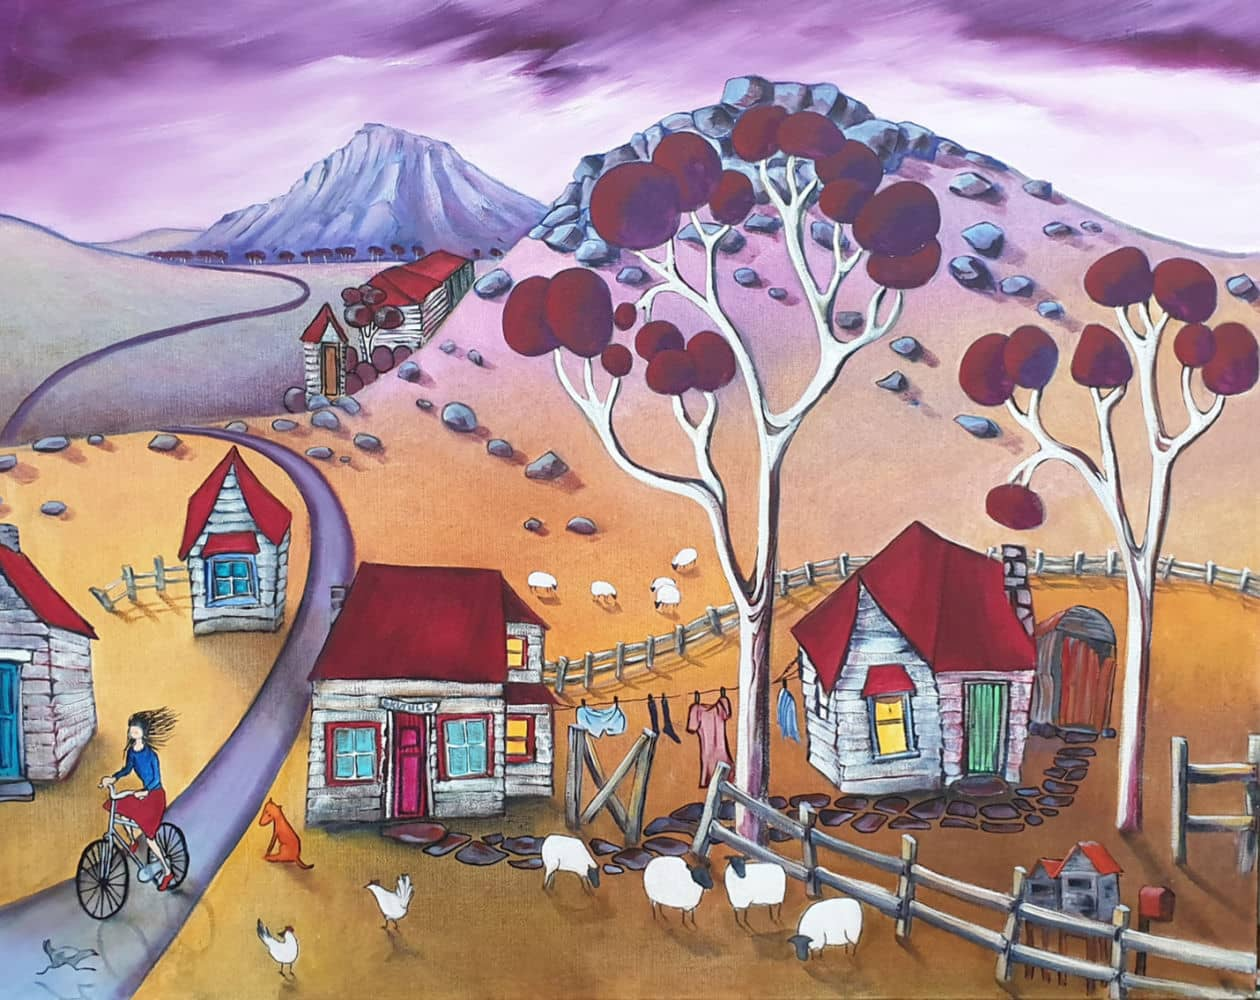 Beverley Skurulis Painting ~ 'One Turbo Chook on the Road' - Gallery Salamanca Hobart Tasmania